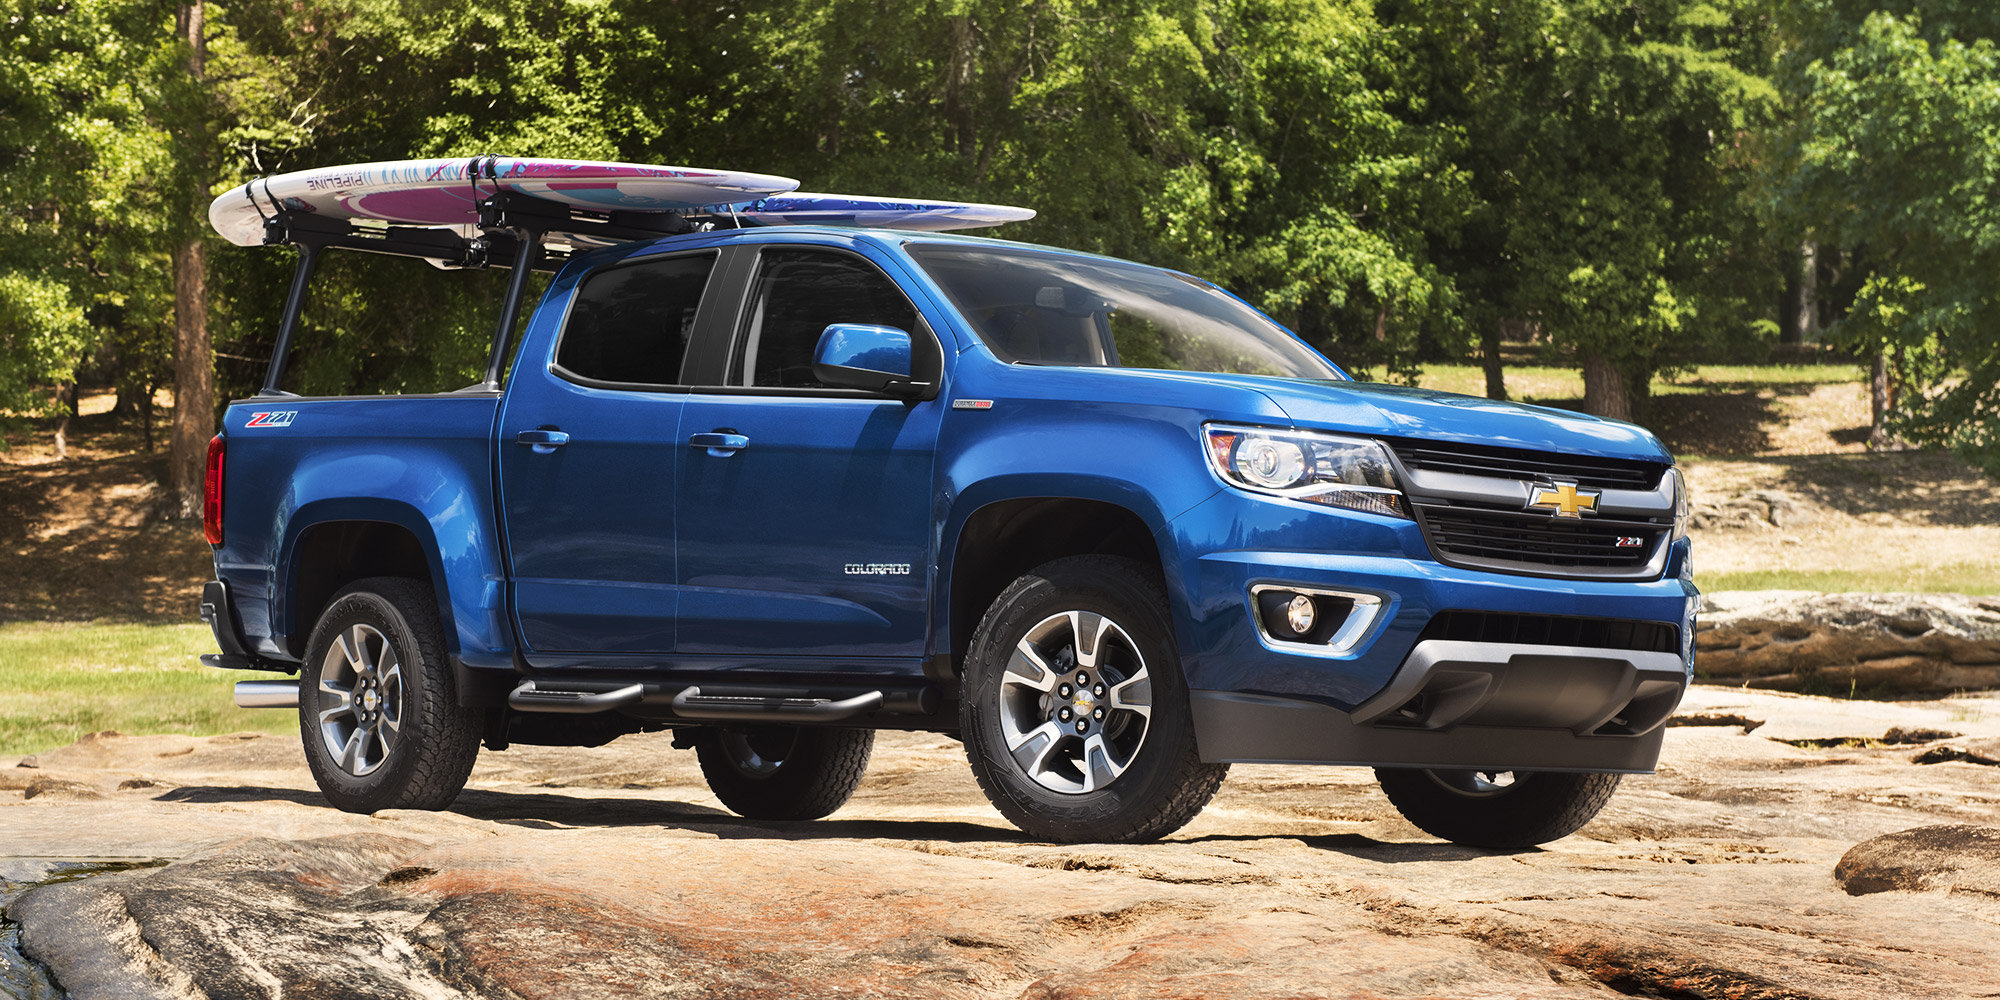 hight resolution of new chevrolet colorado exterior image 1